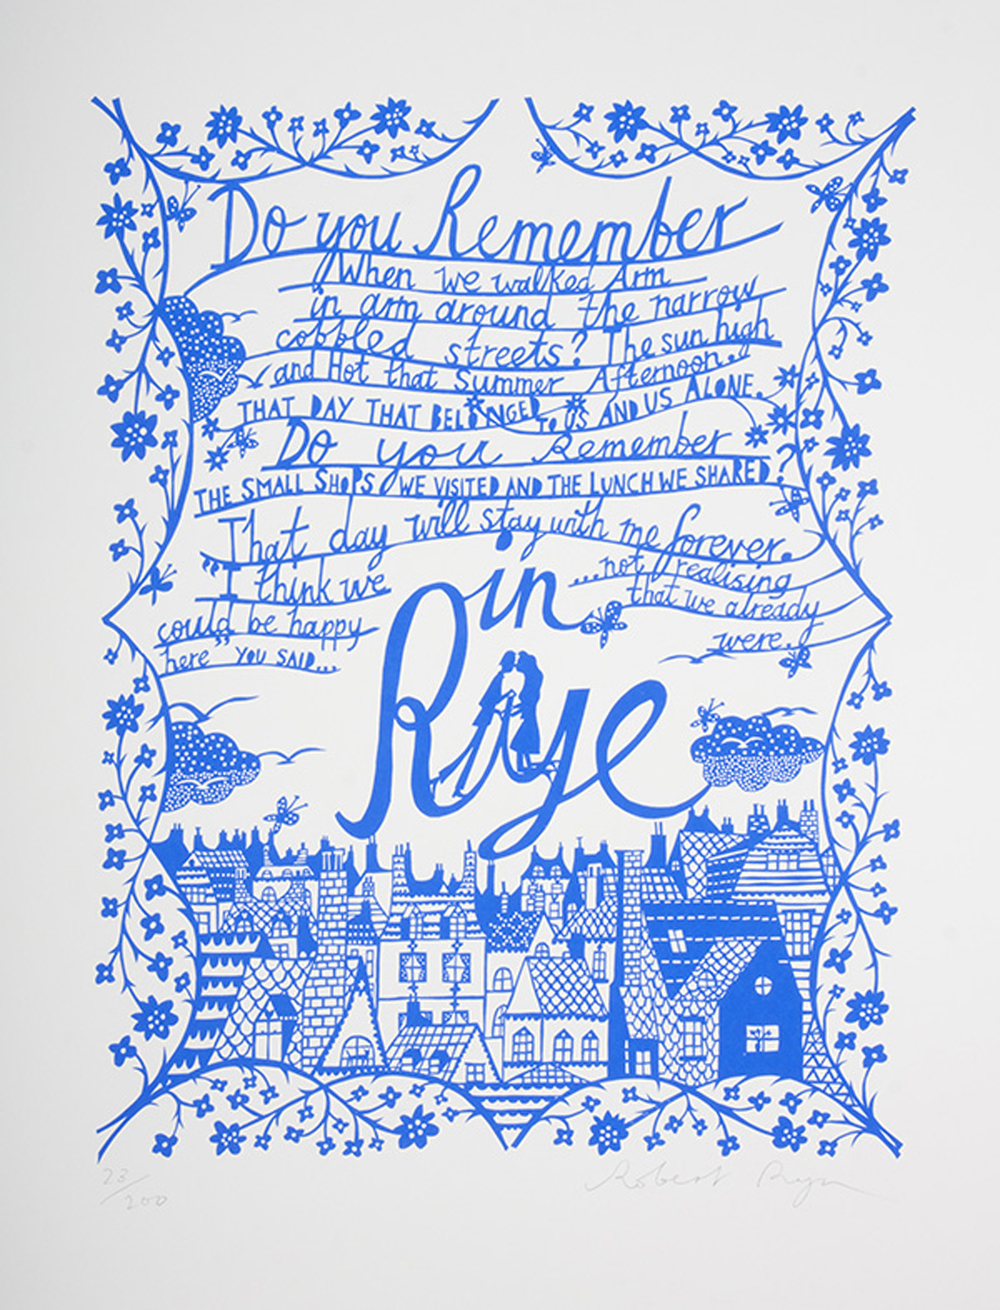 In Rye screenprint